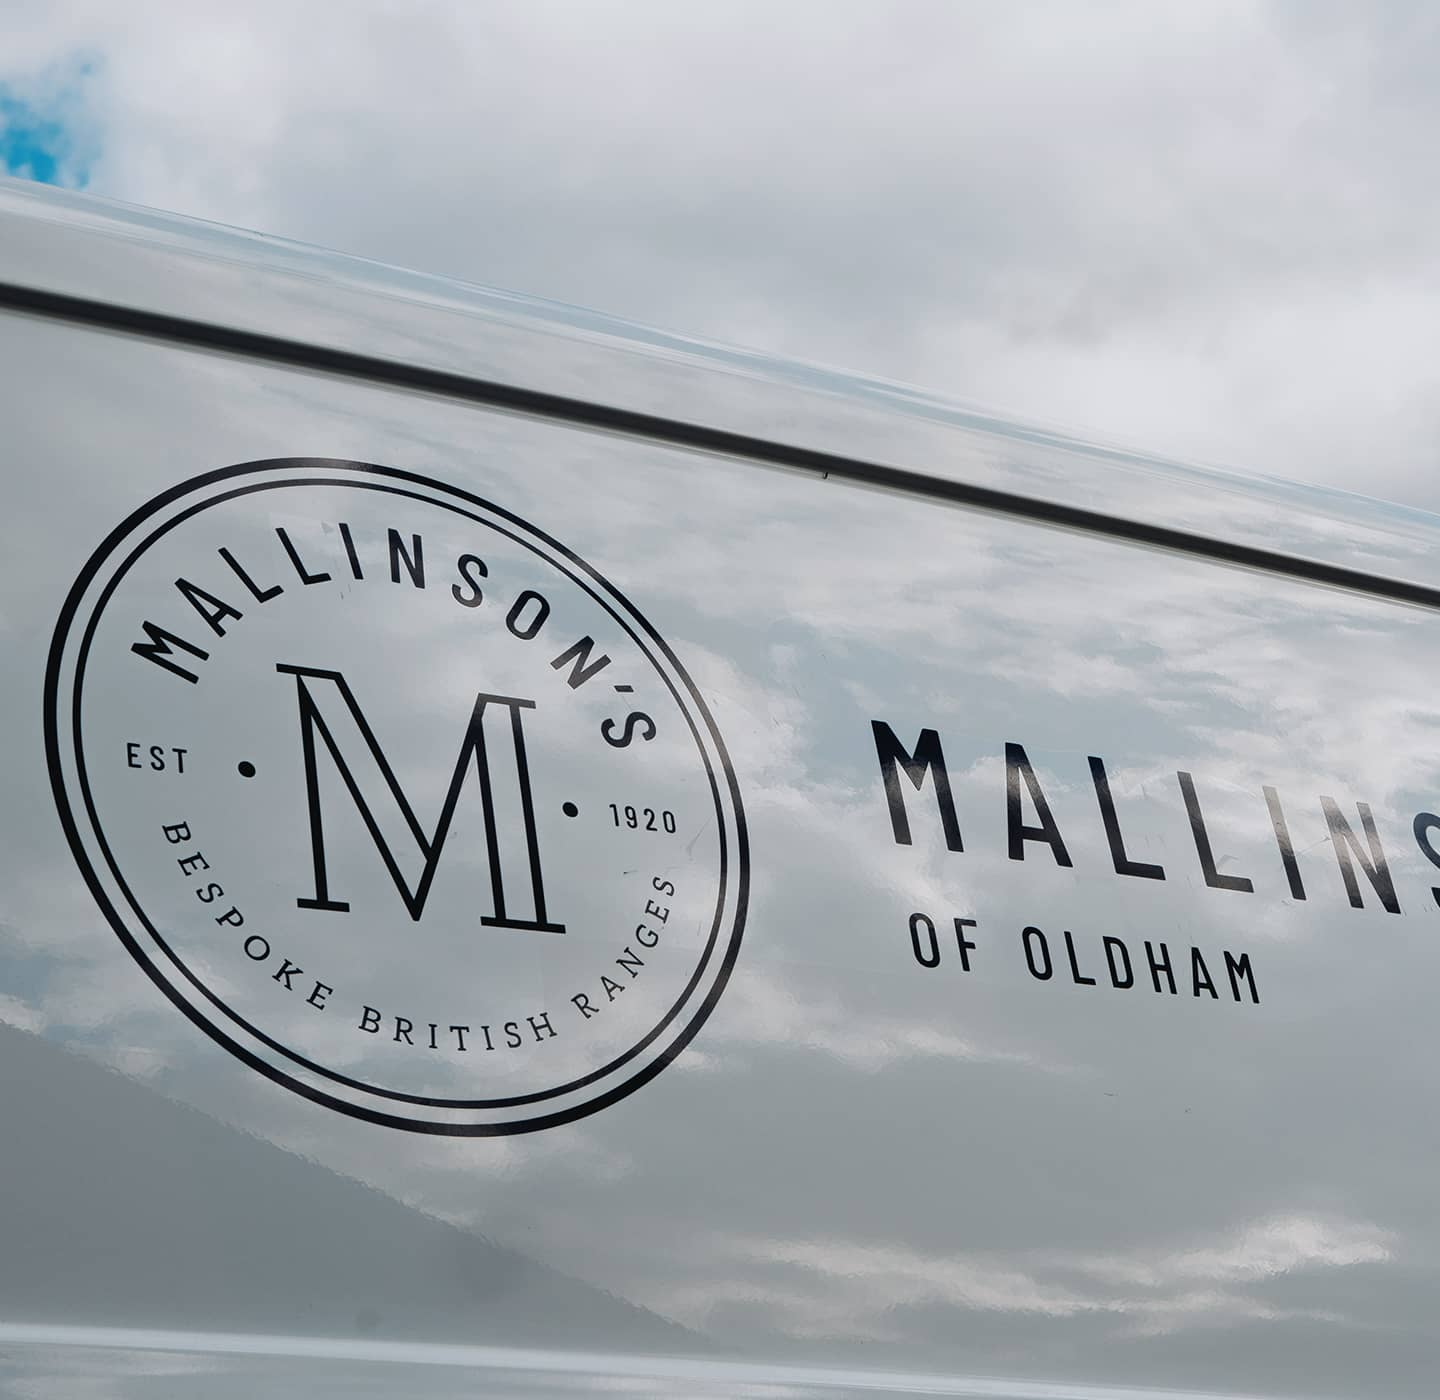 Mallinson's of Oldham are UK-Based Fish and Chip Range Manufacturers